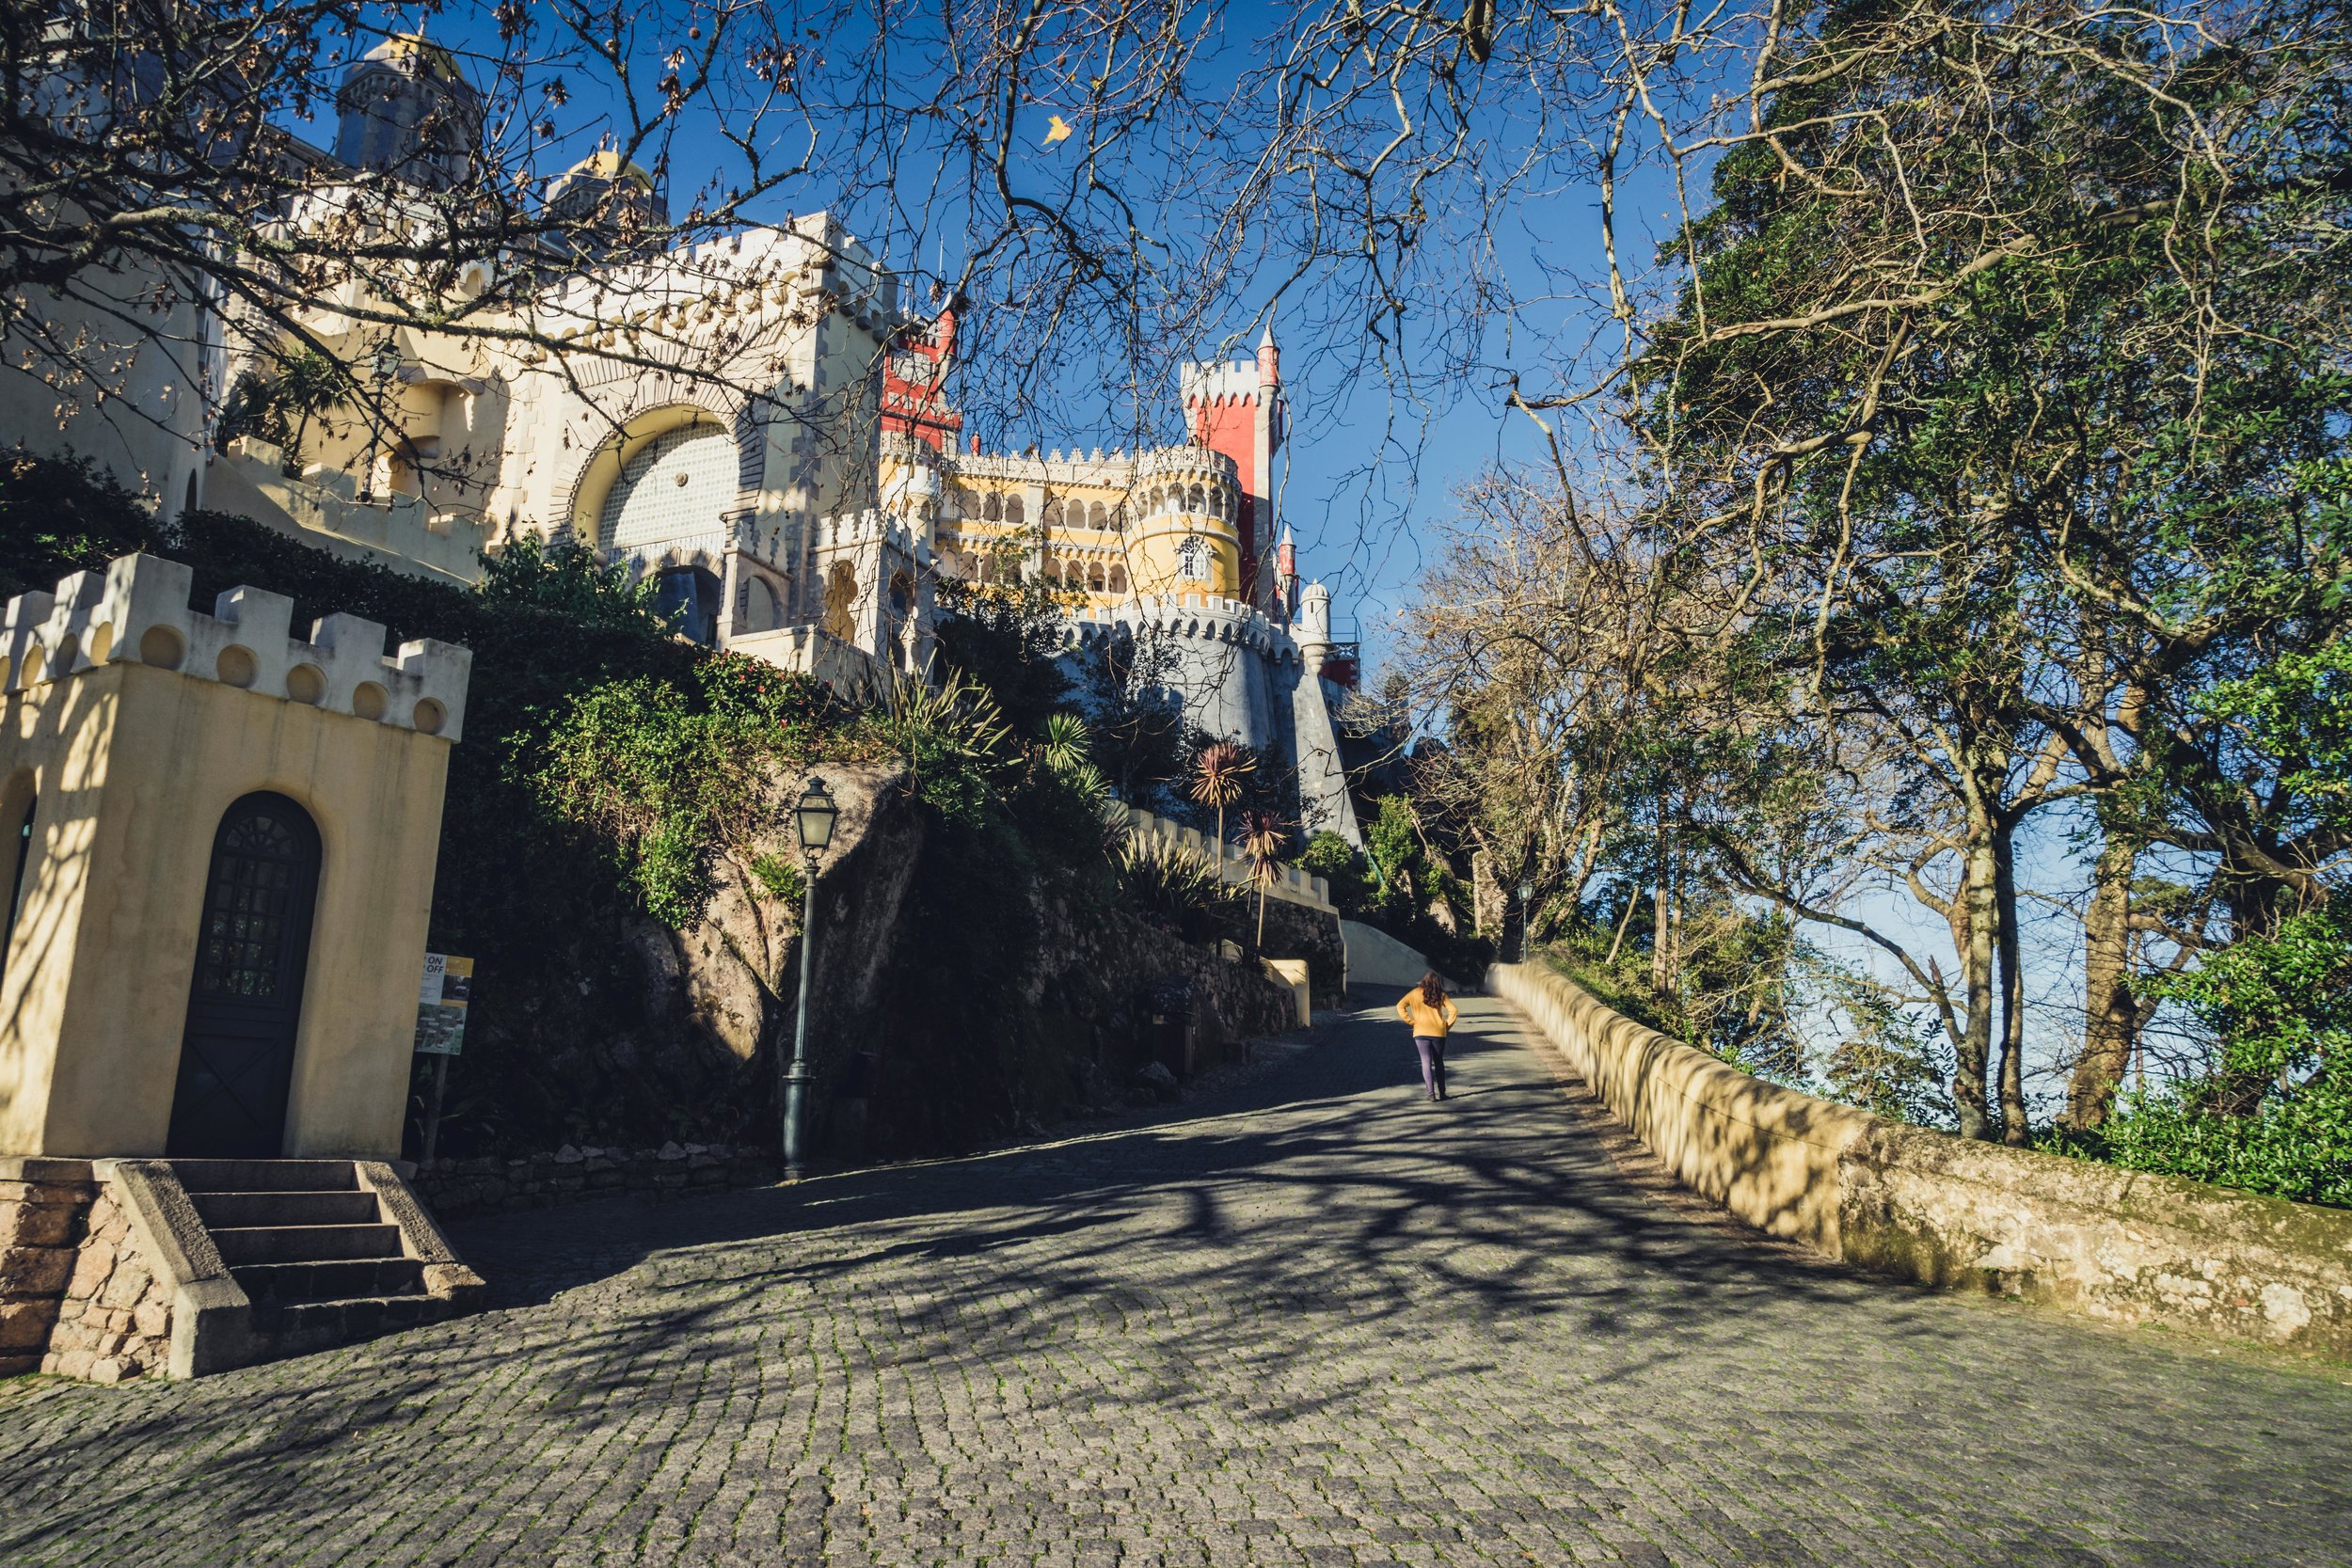 Portugal. Travel. Sintra. Sunshine. Hotel. History. view. room with a view. pena palace.  palace. town. old town. castle. castelo dos mouros walkng up.jpg